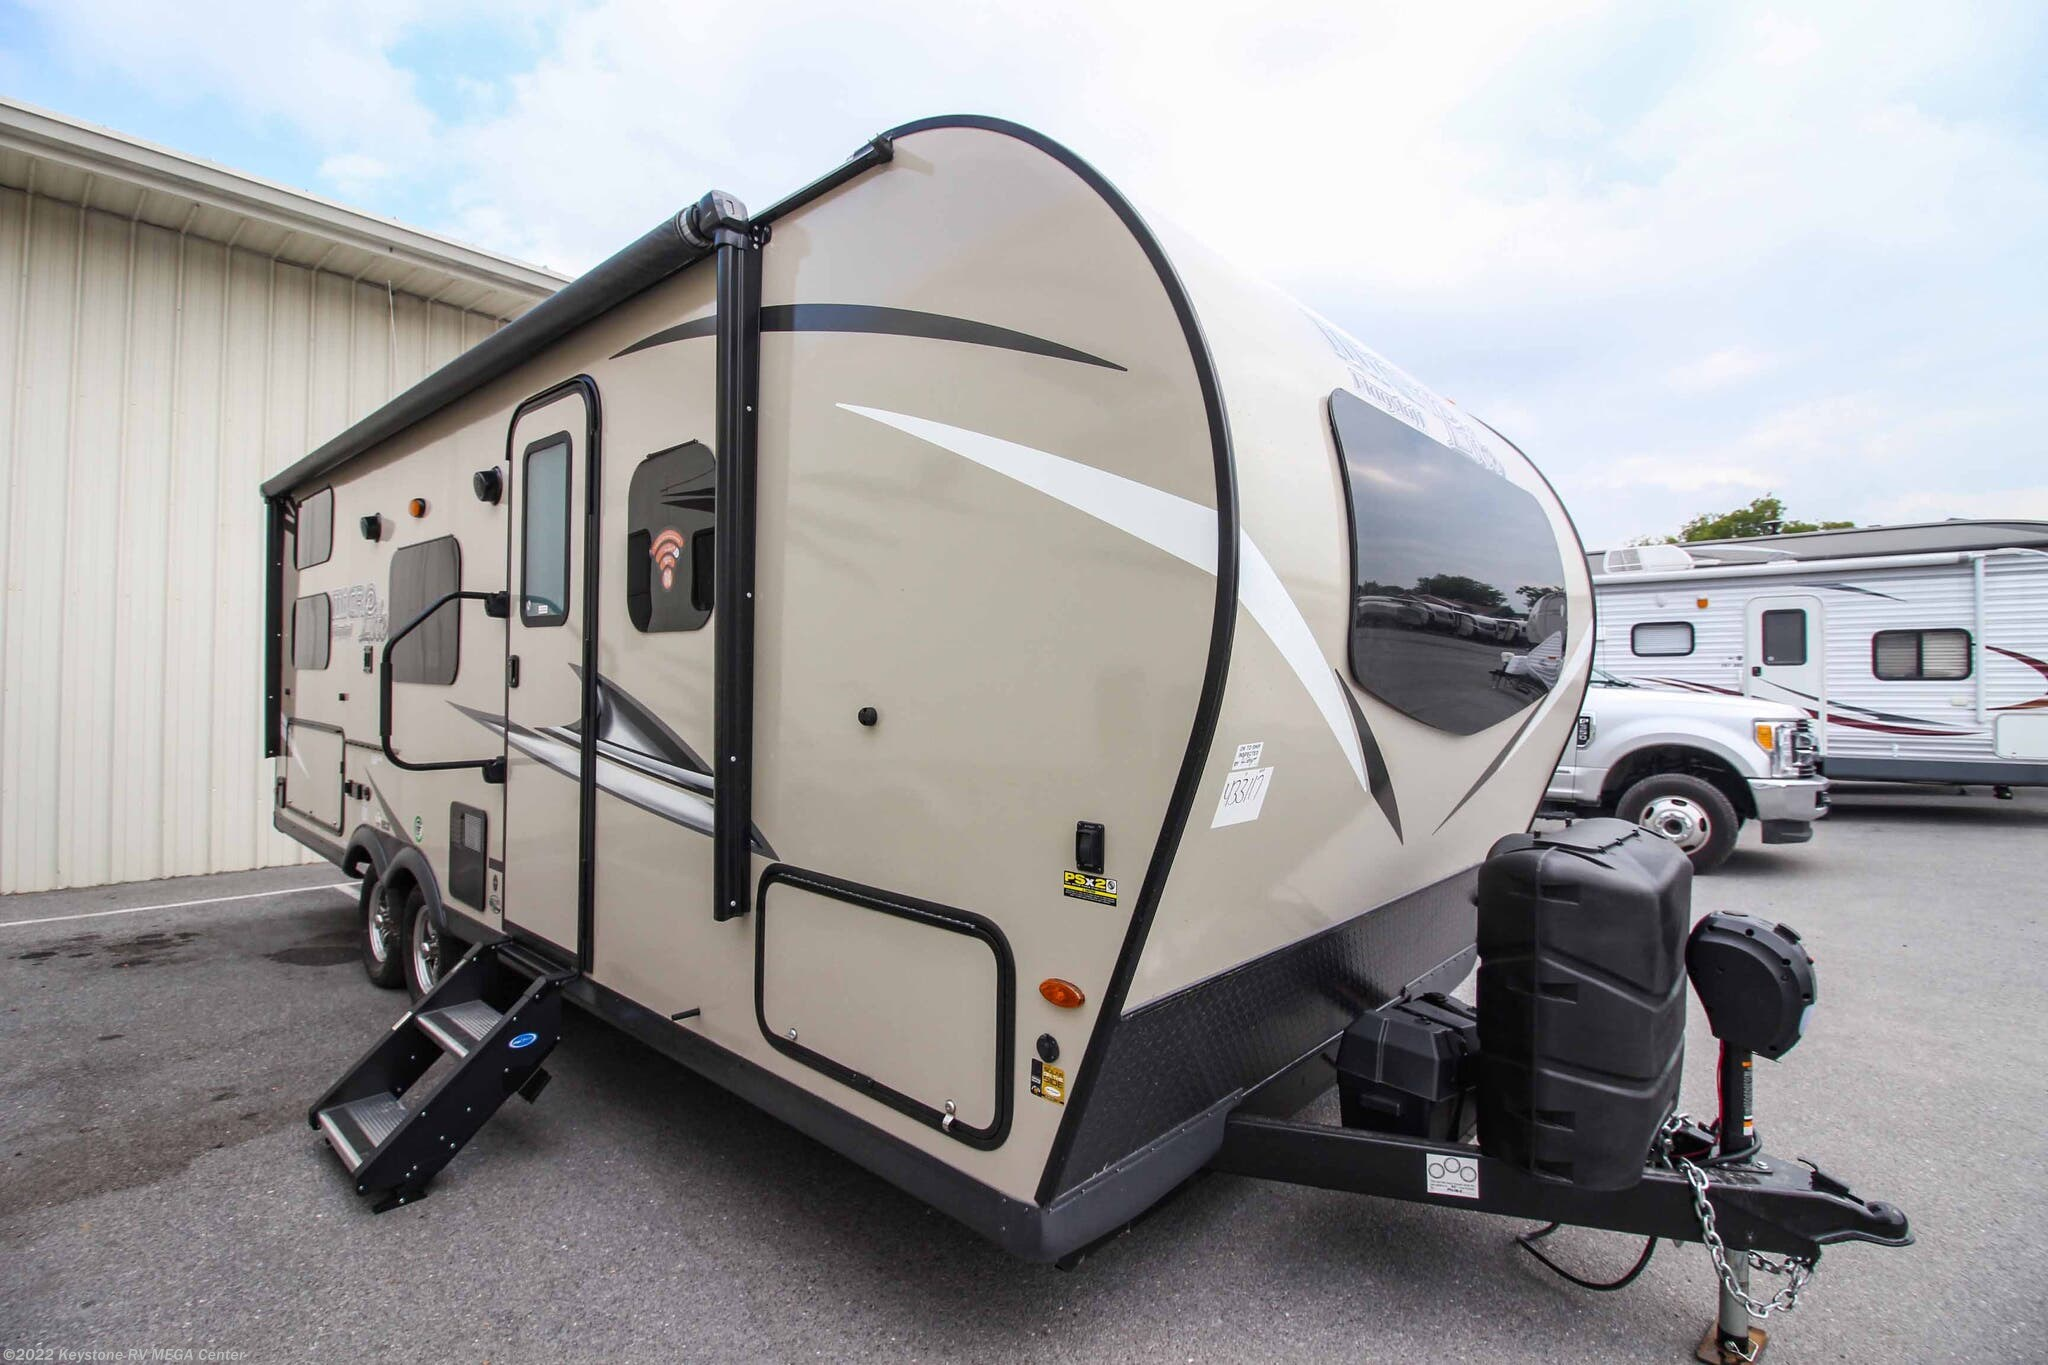 Microlite Travel Trailer >> 2020 Forest River Rv Flagstaff Micro Lite 25lb For Sale In Greencastle Pa 17225 14067